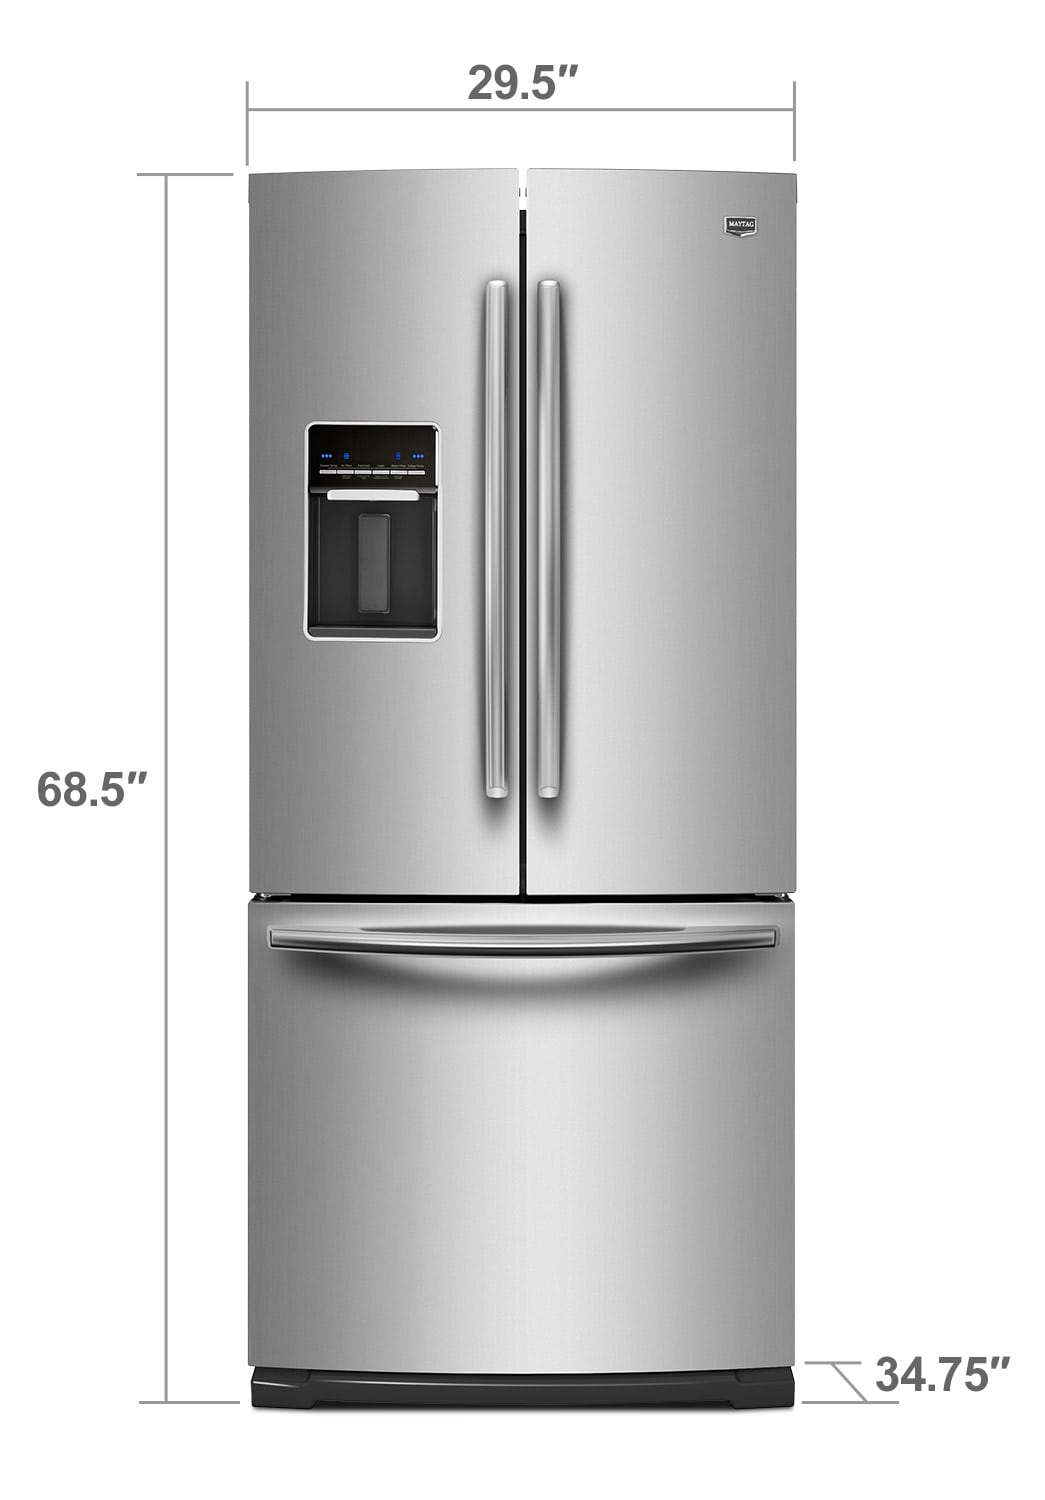 Refrigerator reviews reviews on maytag refrigerators - Maytag whirlpool ...